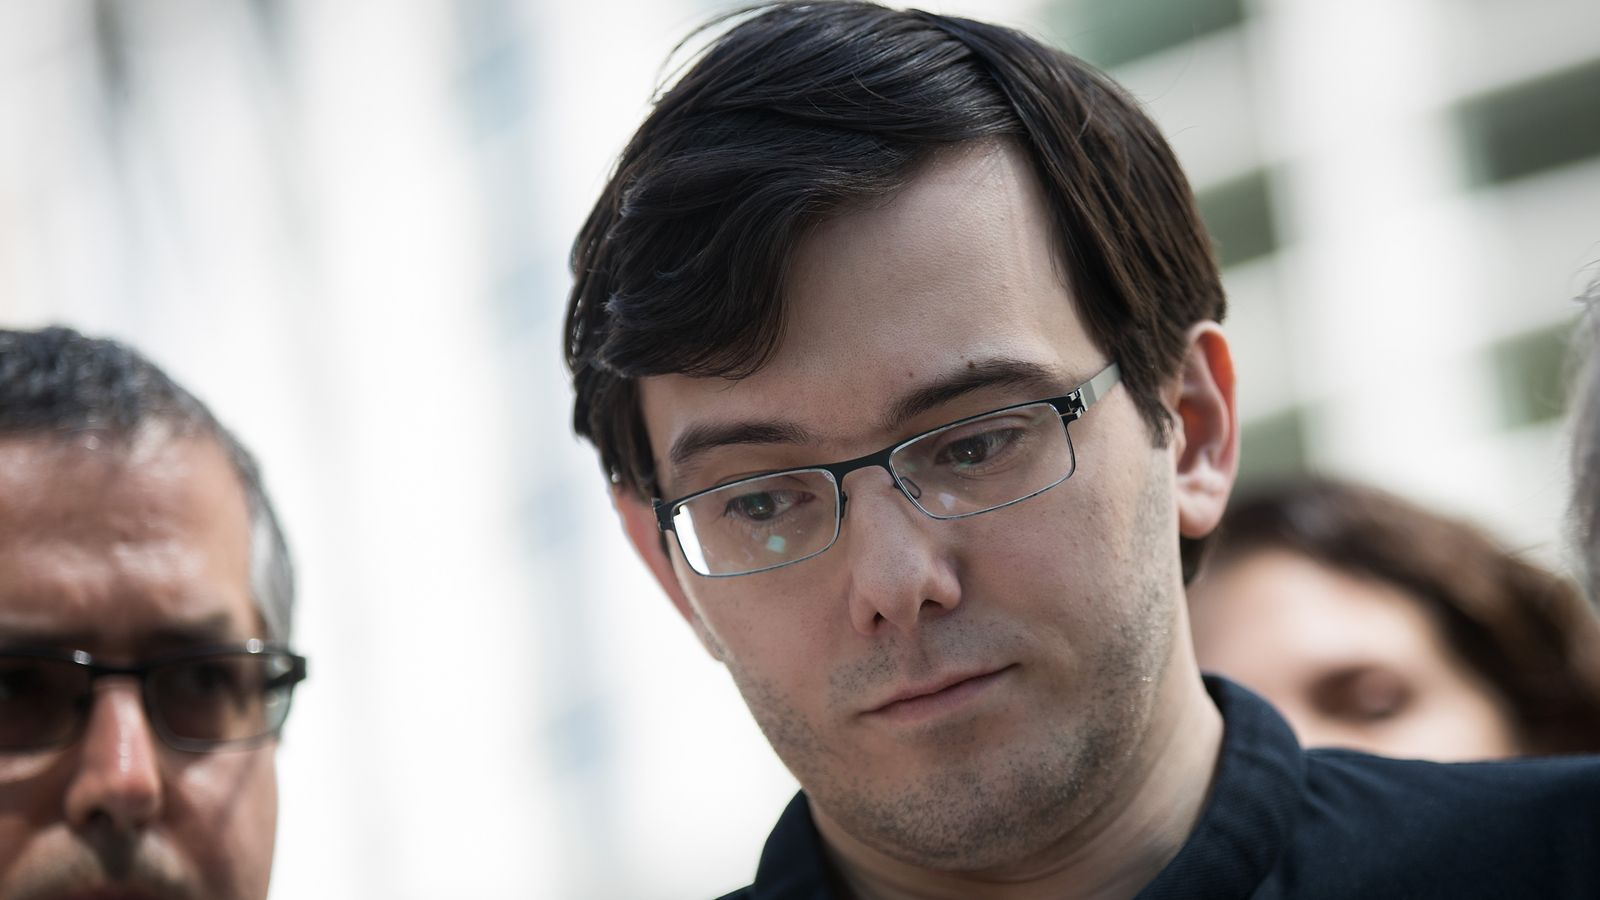 Coronavirus: 'Pharma Bro' who hiked drug price by 5,000% asks for prison release to research COVID-19 treatment